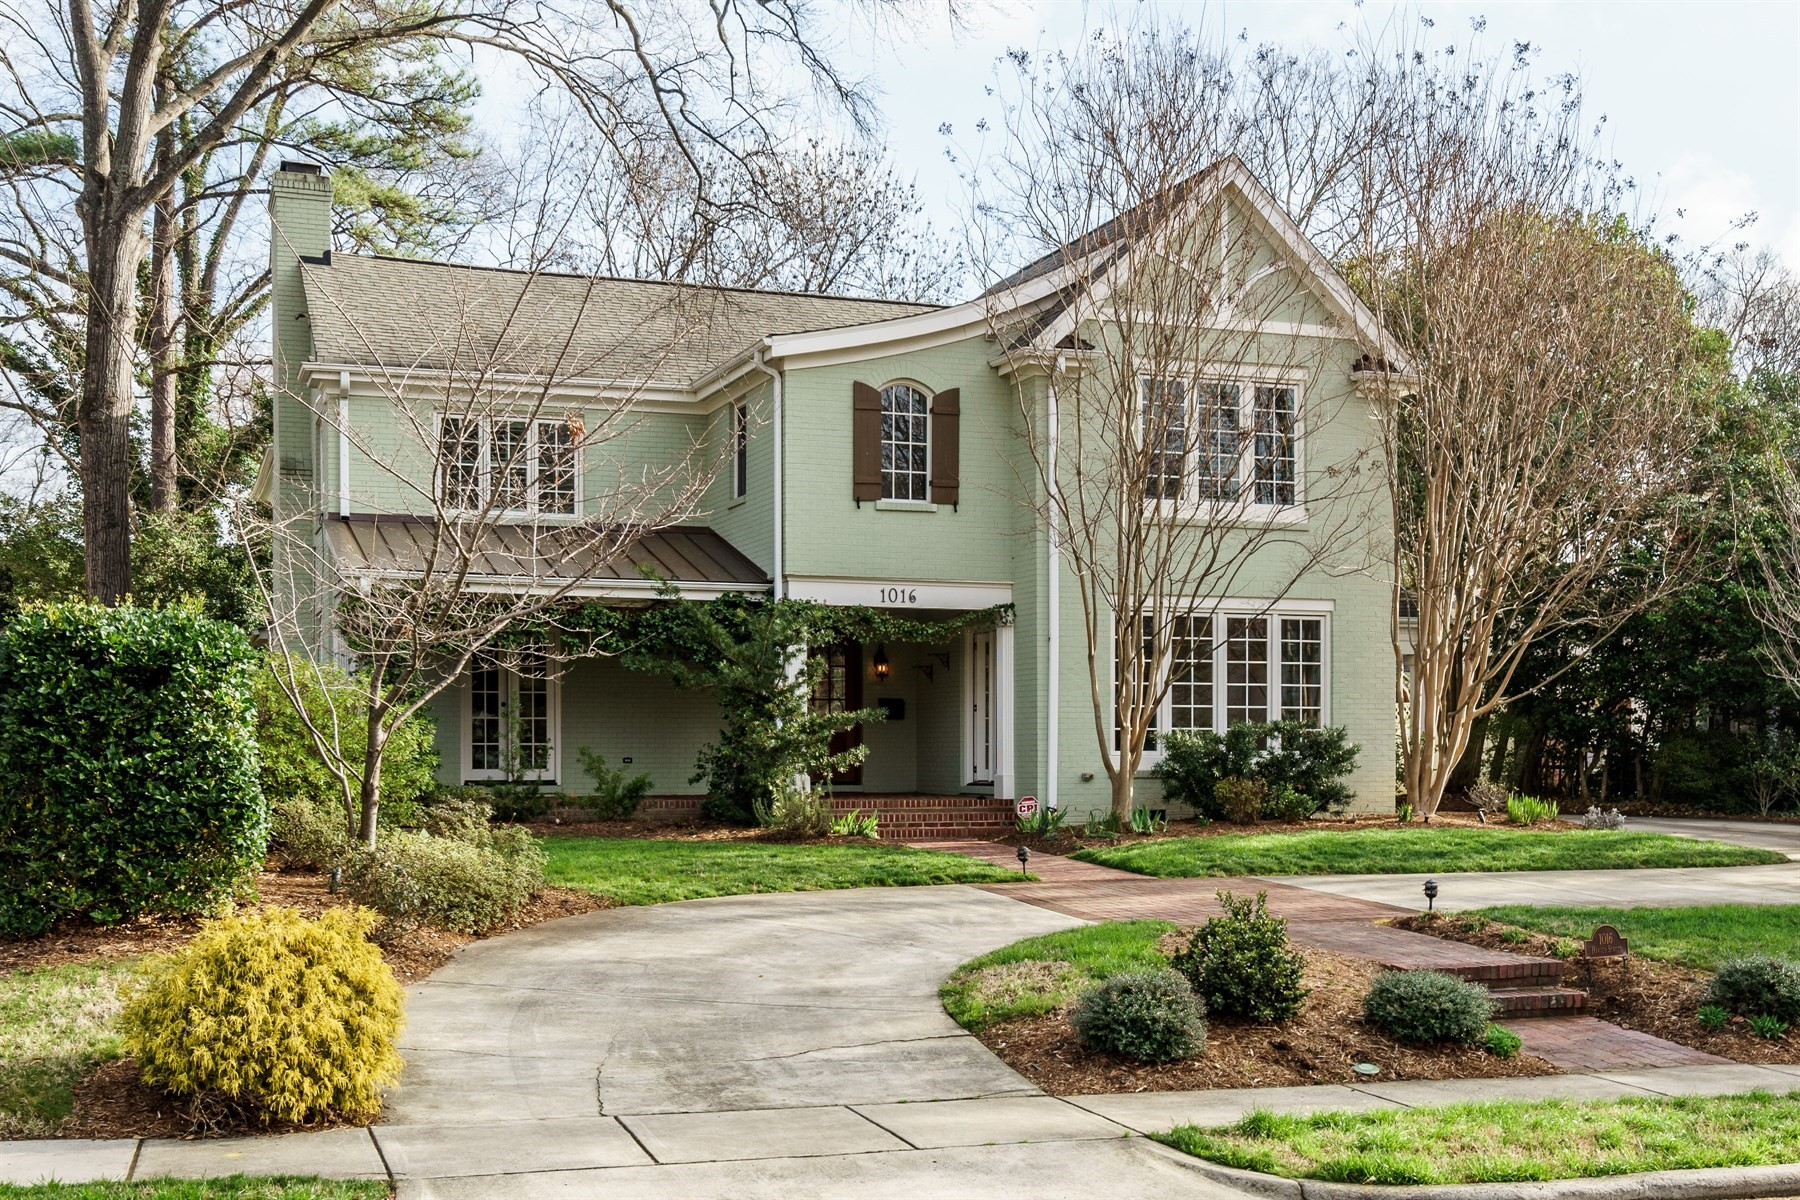 Single Family Home for Sale at 1016 Harvey Street 1016 Harvey Street Raleigh, North Carolina 27608 United States